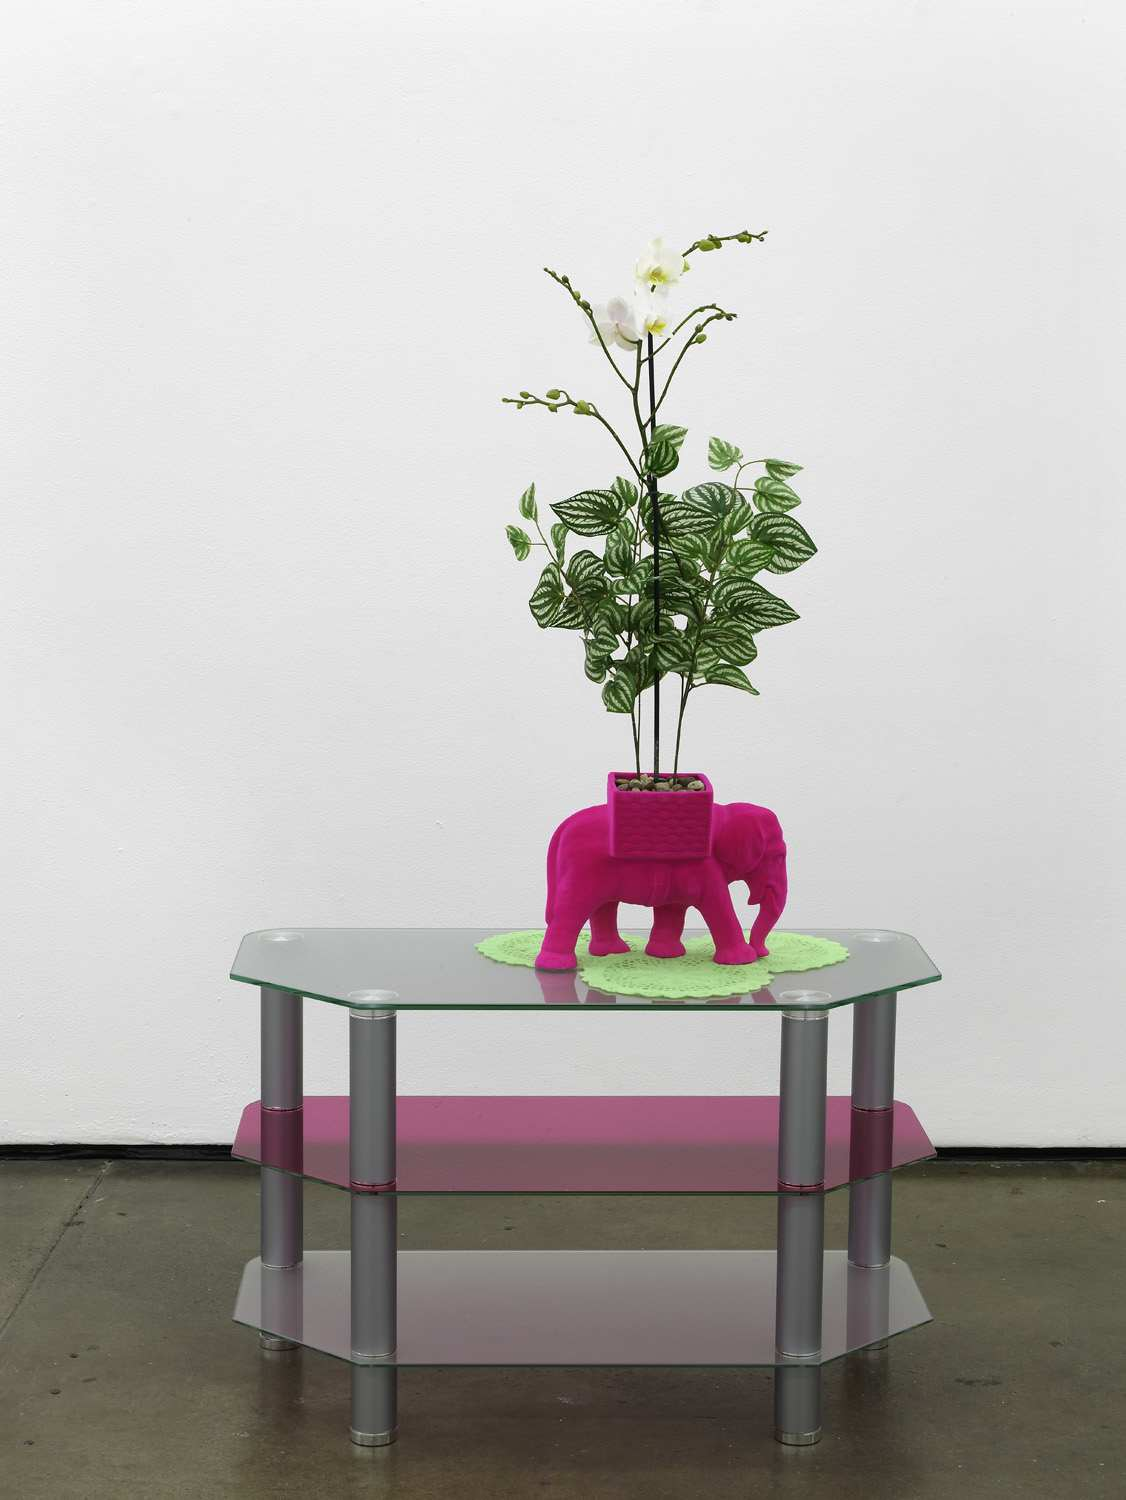 Matthew Darbyshire Untitled Homeware No. 14 2011 fuchsia flocked elephant planter, lime flocked doilies, artificial orchid, coloured glass gels,  glass and steel support: 140 x 80 x 40 cm